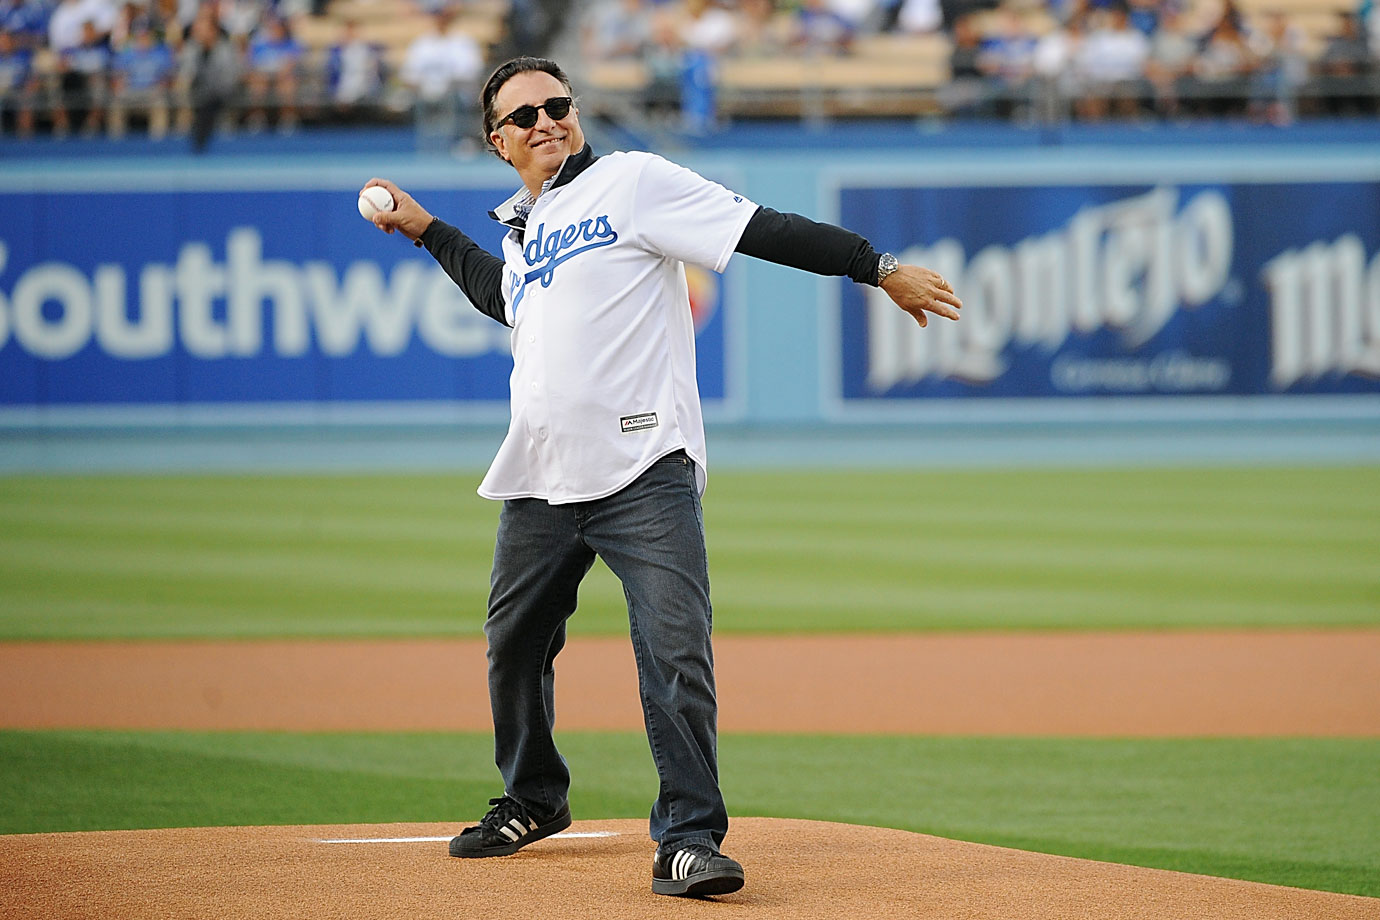 May 11 at Dodger Stadium in Los Angeles